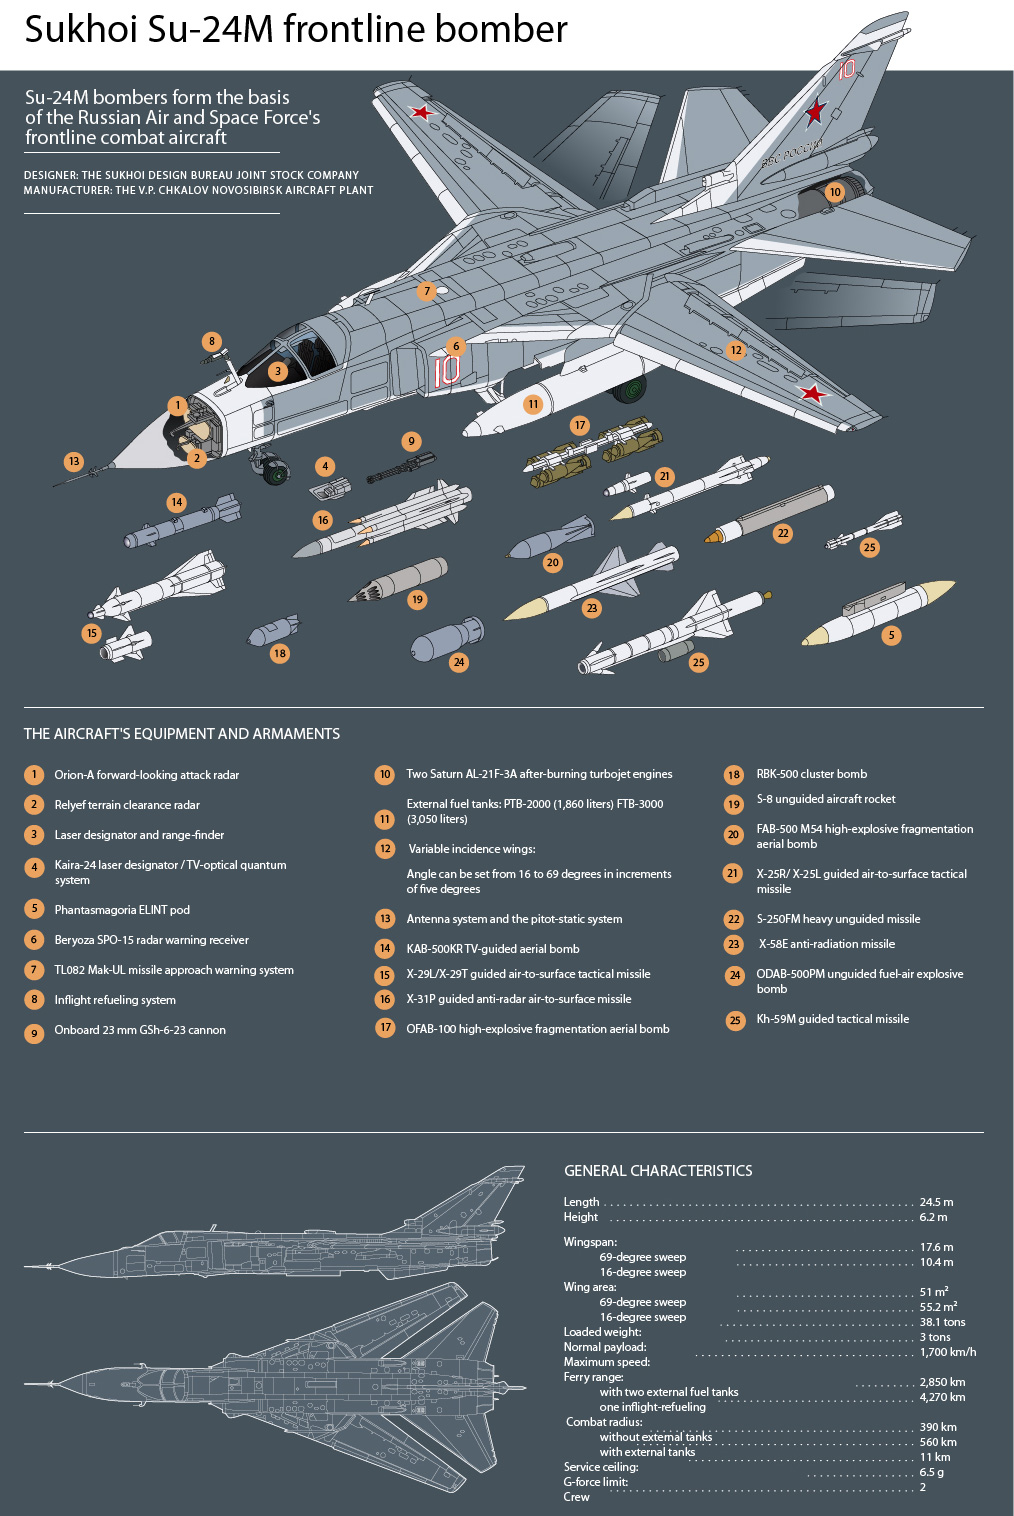 Read more: 10 facts about the Sukhoi Su-24 bomber>>>